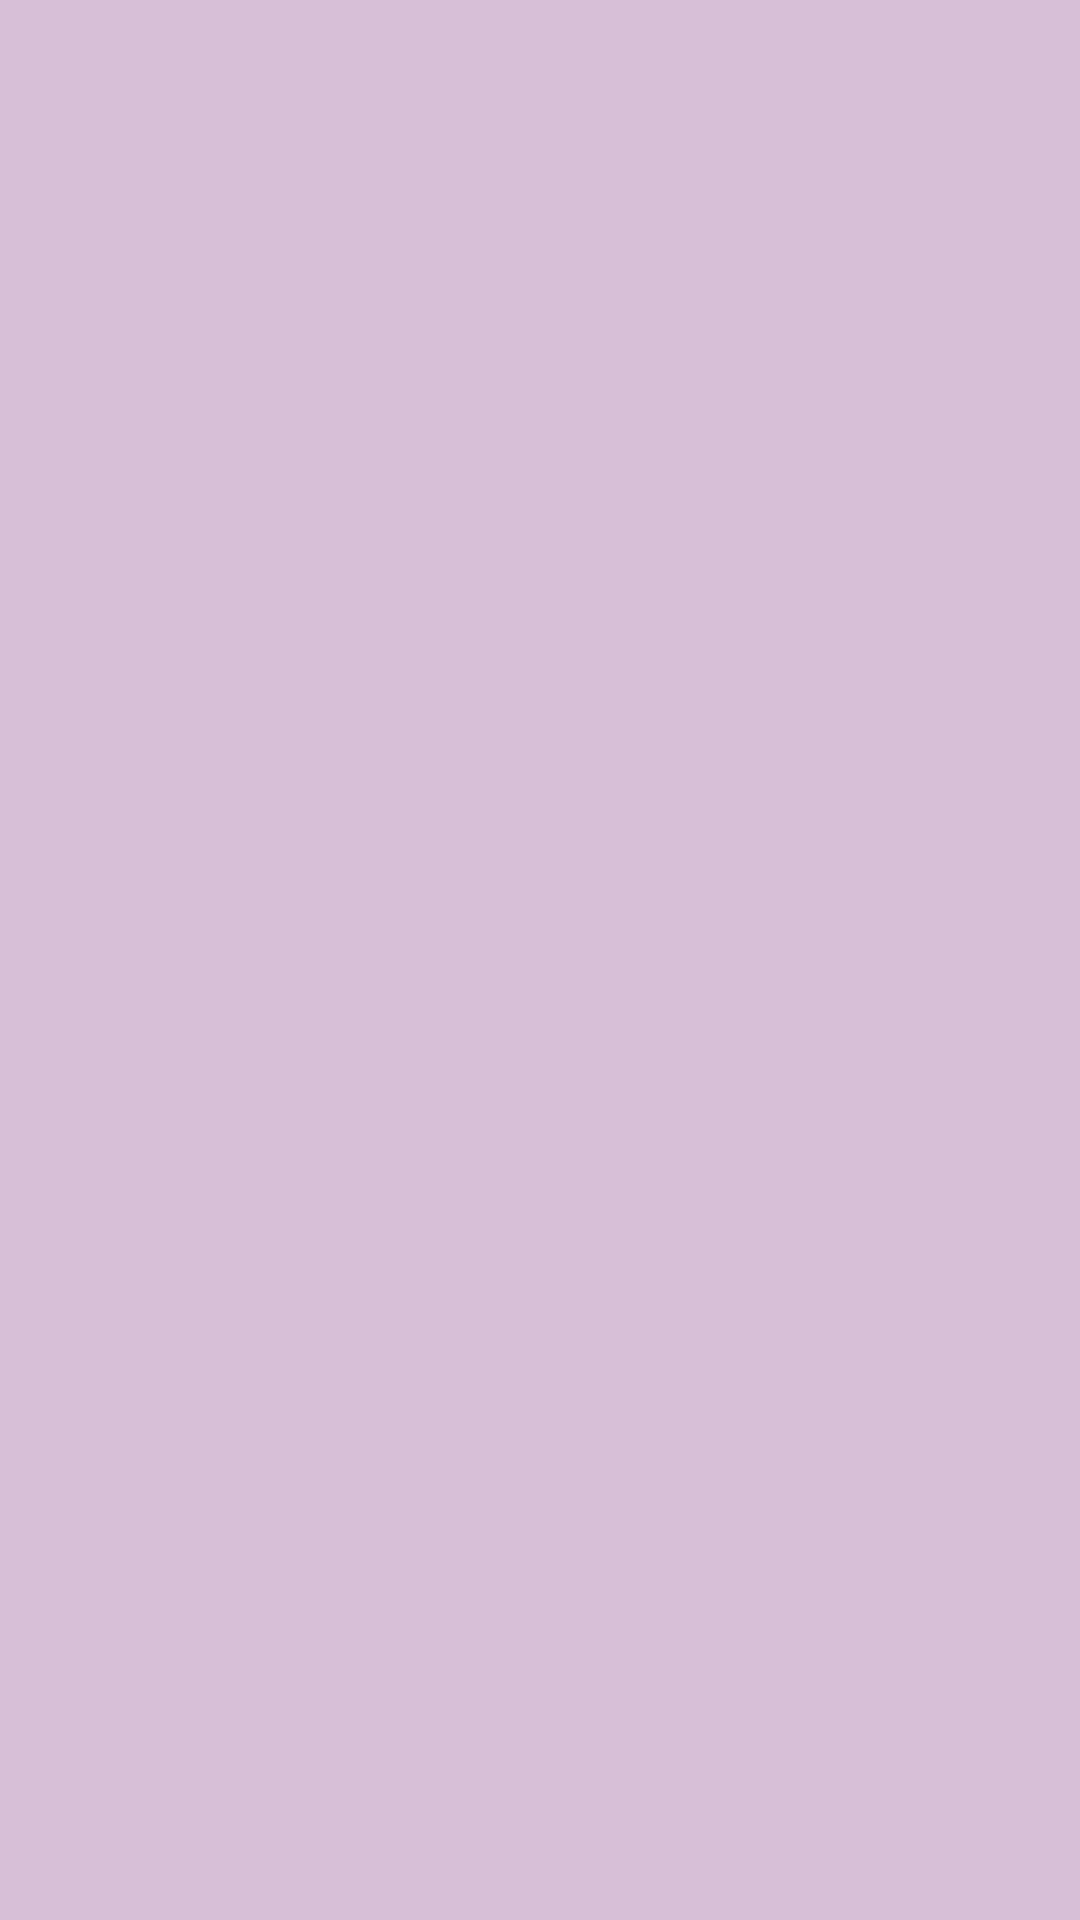 1080x1920 Thistle Solid Color Background